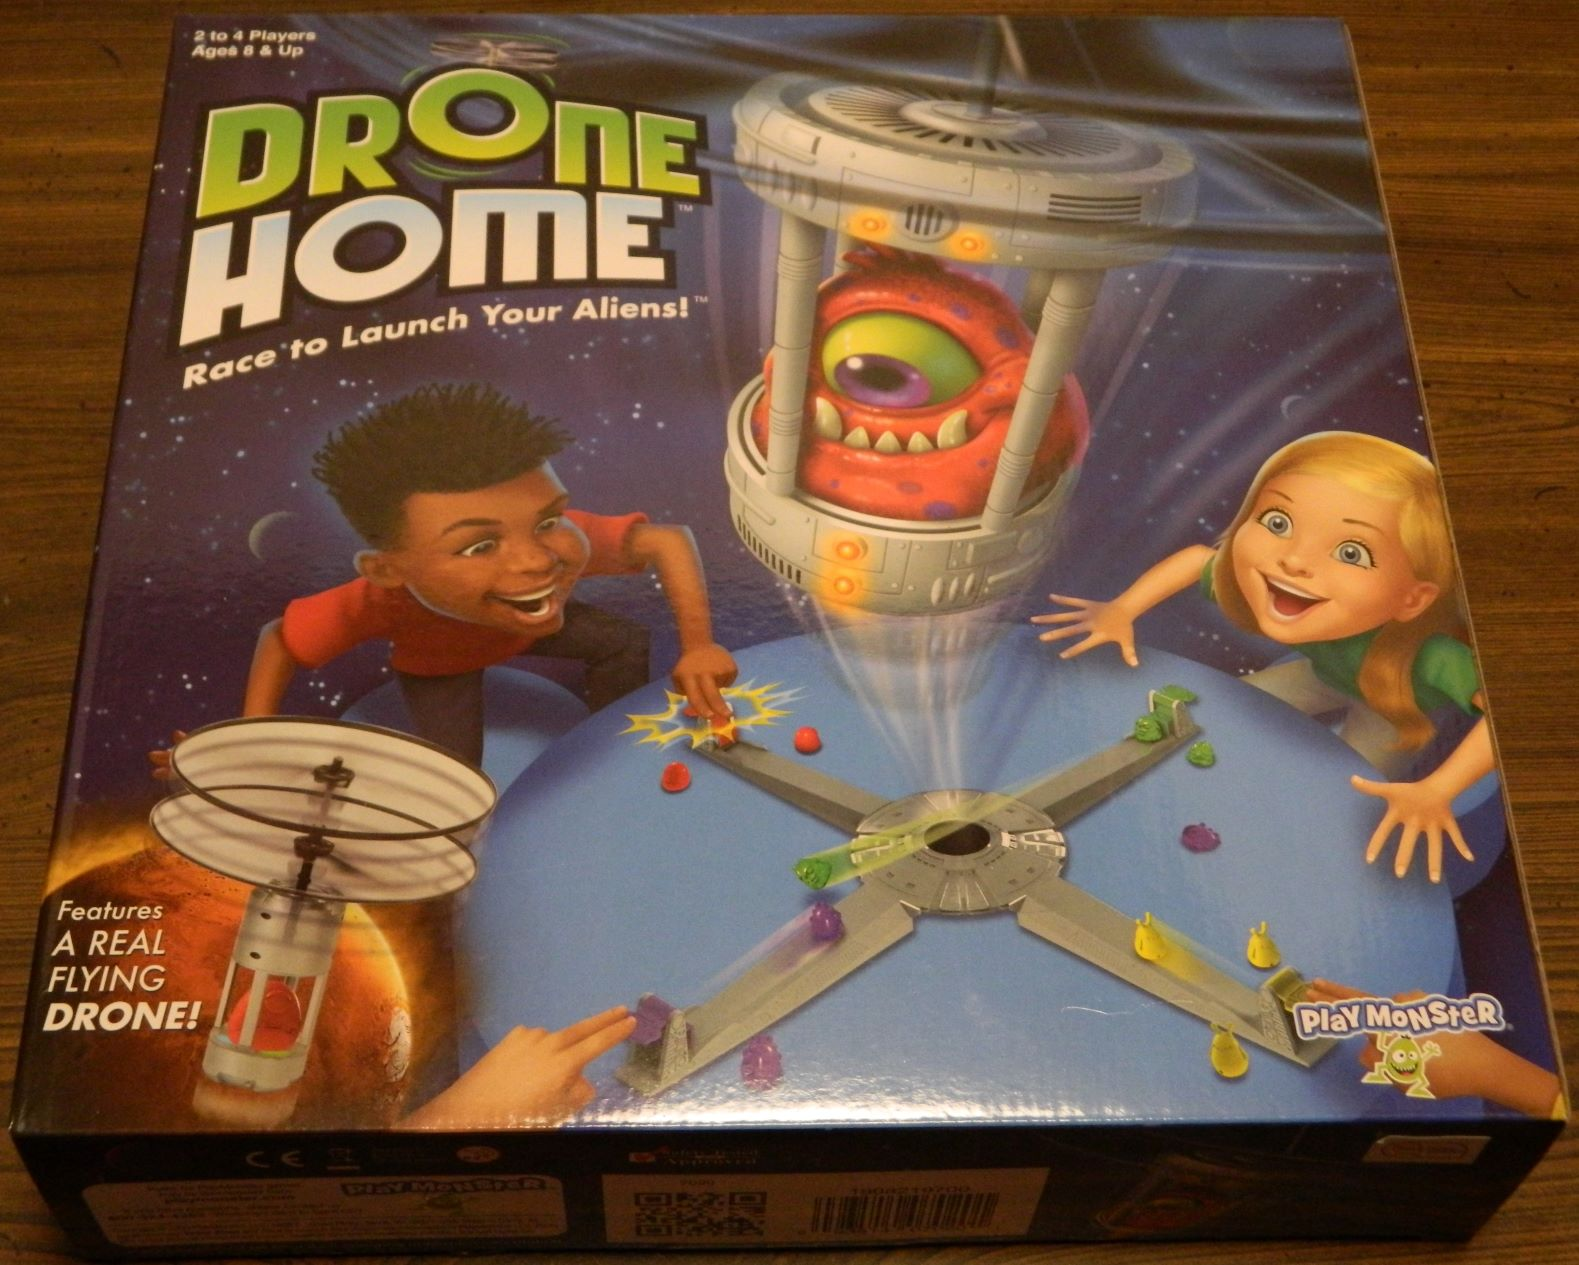 Box for Drone Home